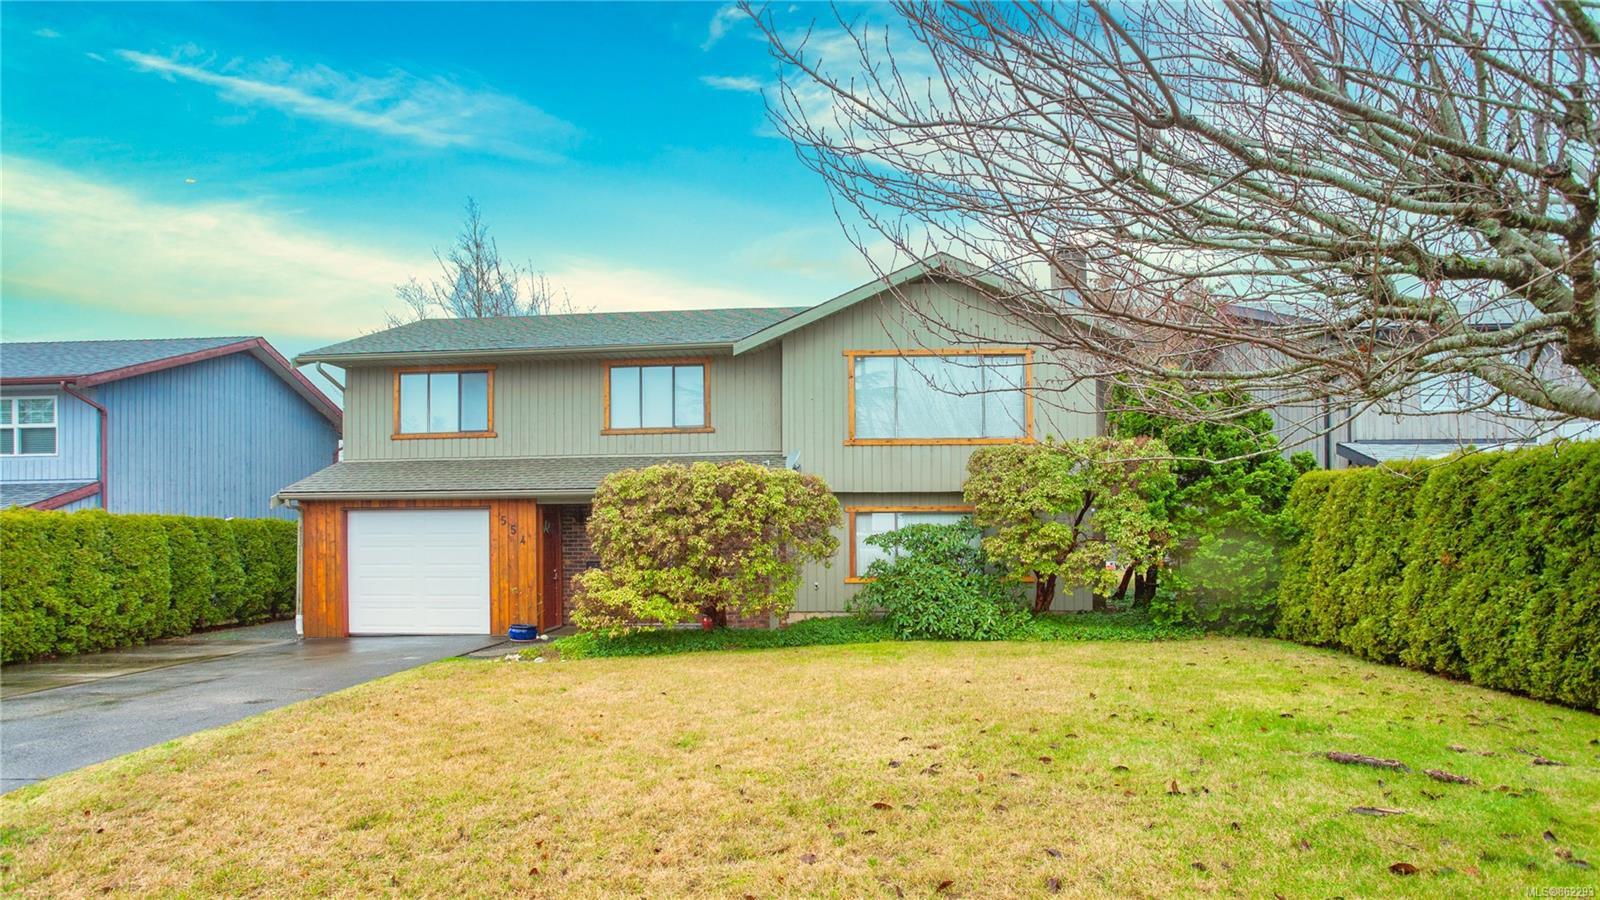 Main Photo: 554 S Birch St in : CR Campbell River Central House for sale (Campbell River)  : MLS®# 862293